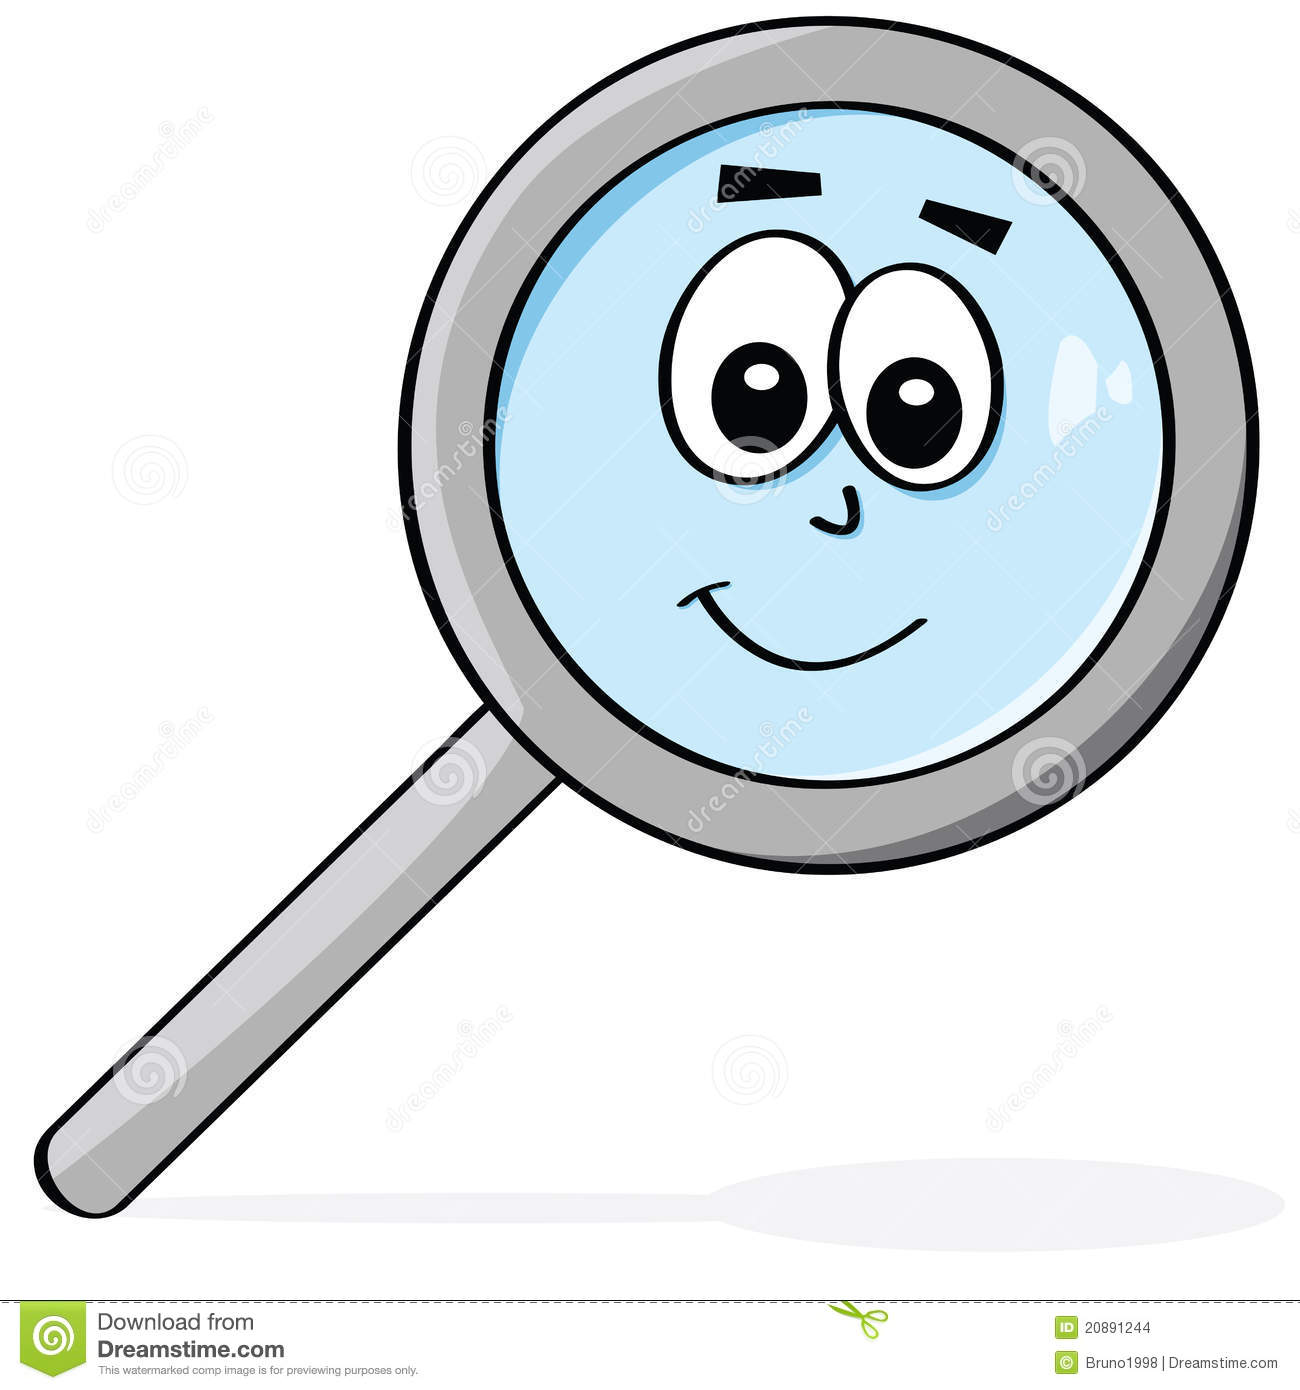 lupa feliz imagenes de archivo imagen 20891244 magnifying glass vector icon free download vector image magnifying glass